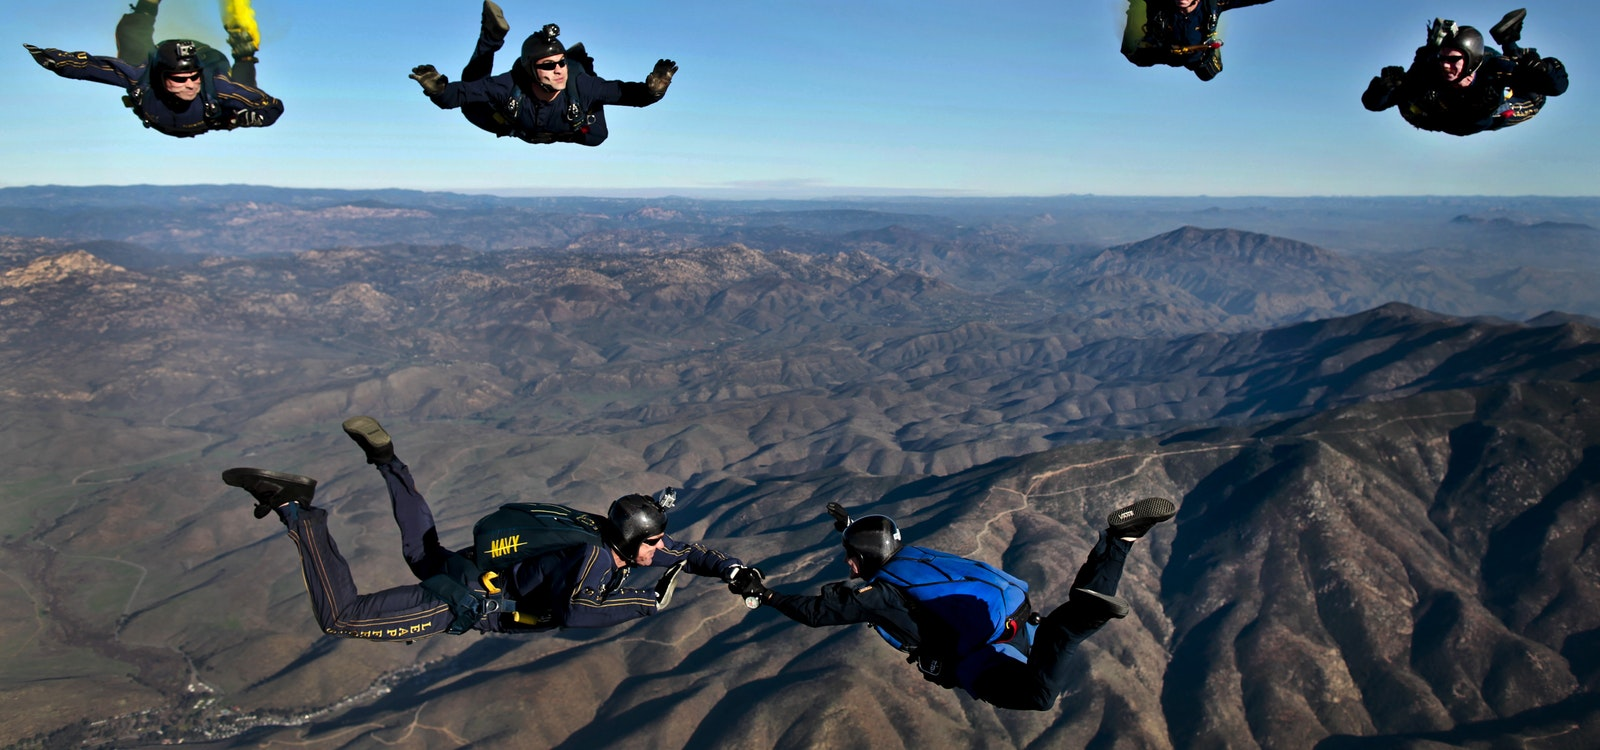 4 Reasons That You Should Go Skydiving Today